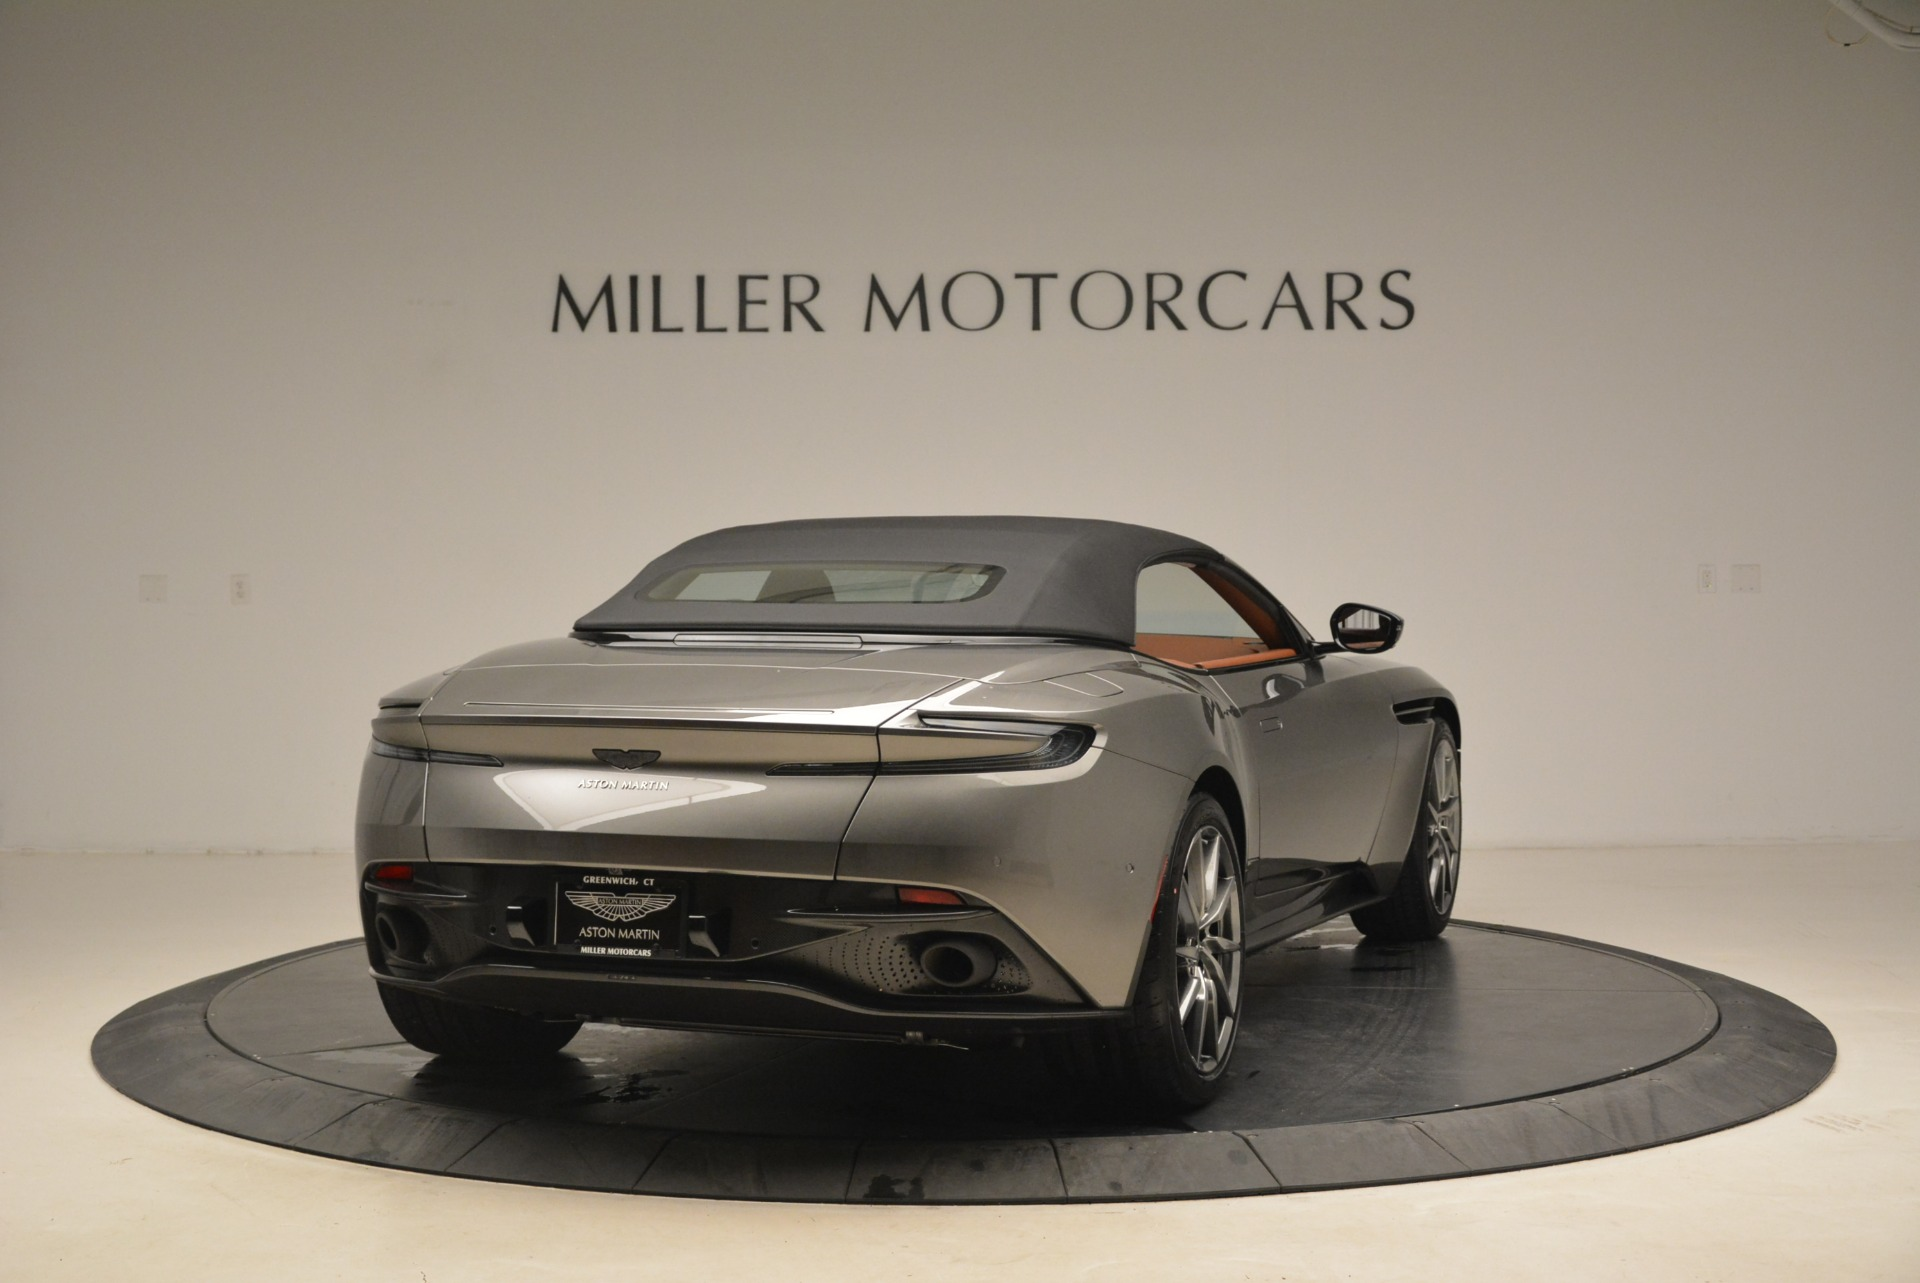 New 2019 Aston Martin DB11 Volante  For Sale In Greenwich, CT. Alfa Romeo of Greenwich, A1284 2209_p19